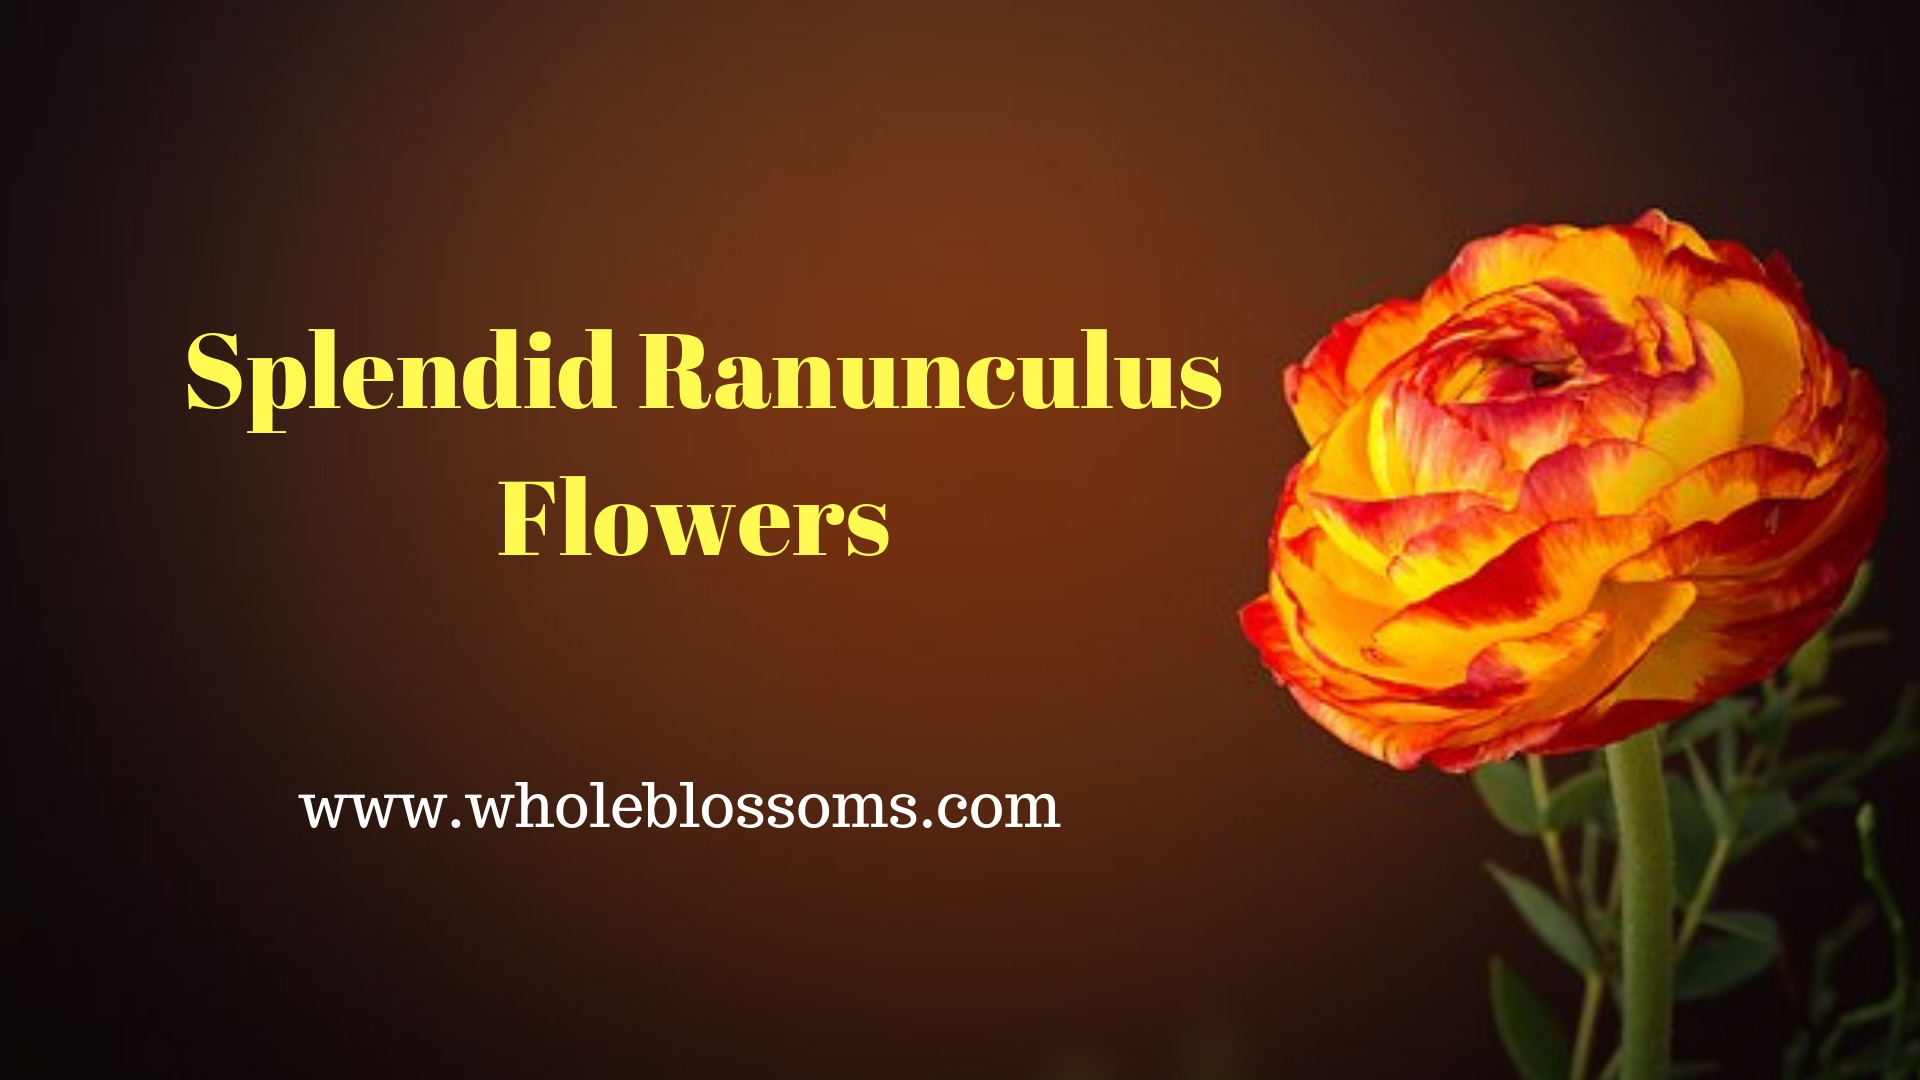 Purchase Classic & Wonderful Color Varieties of Ranunculus